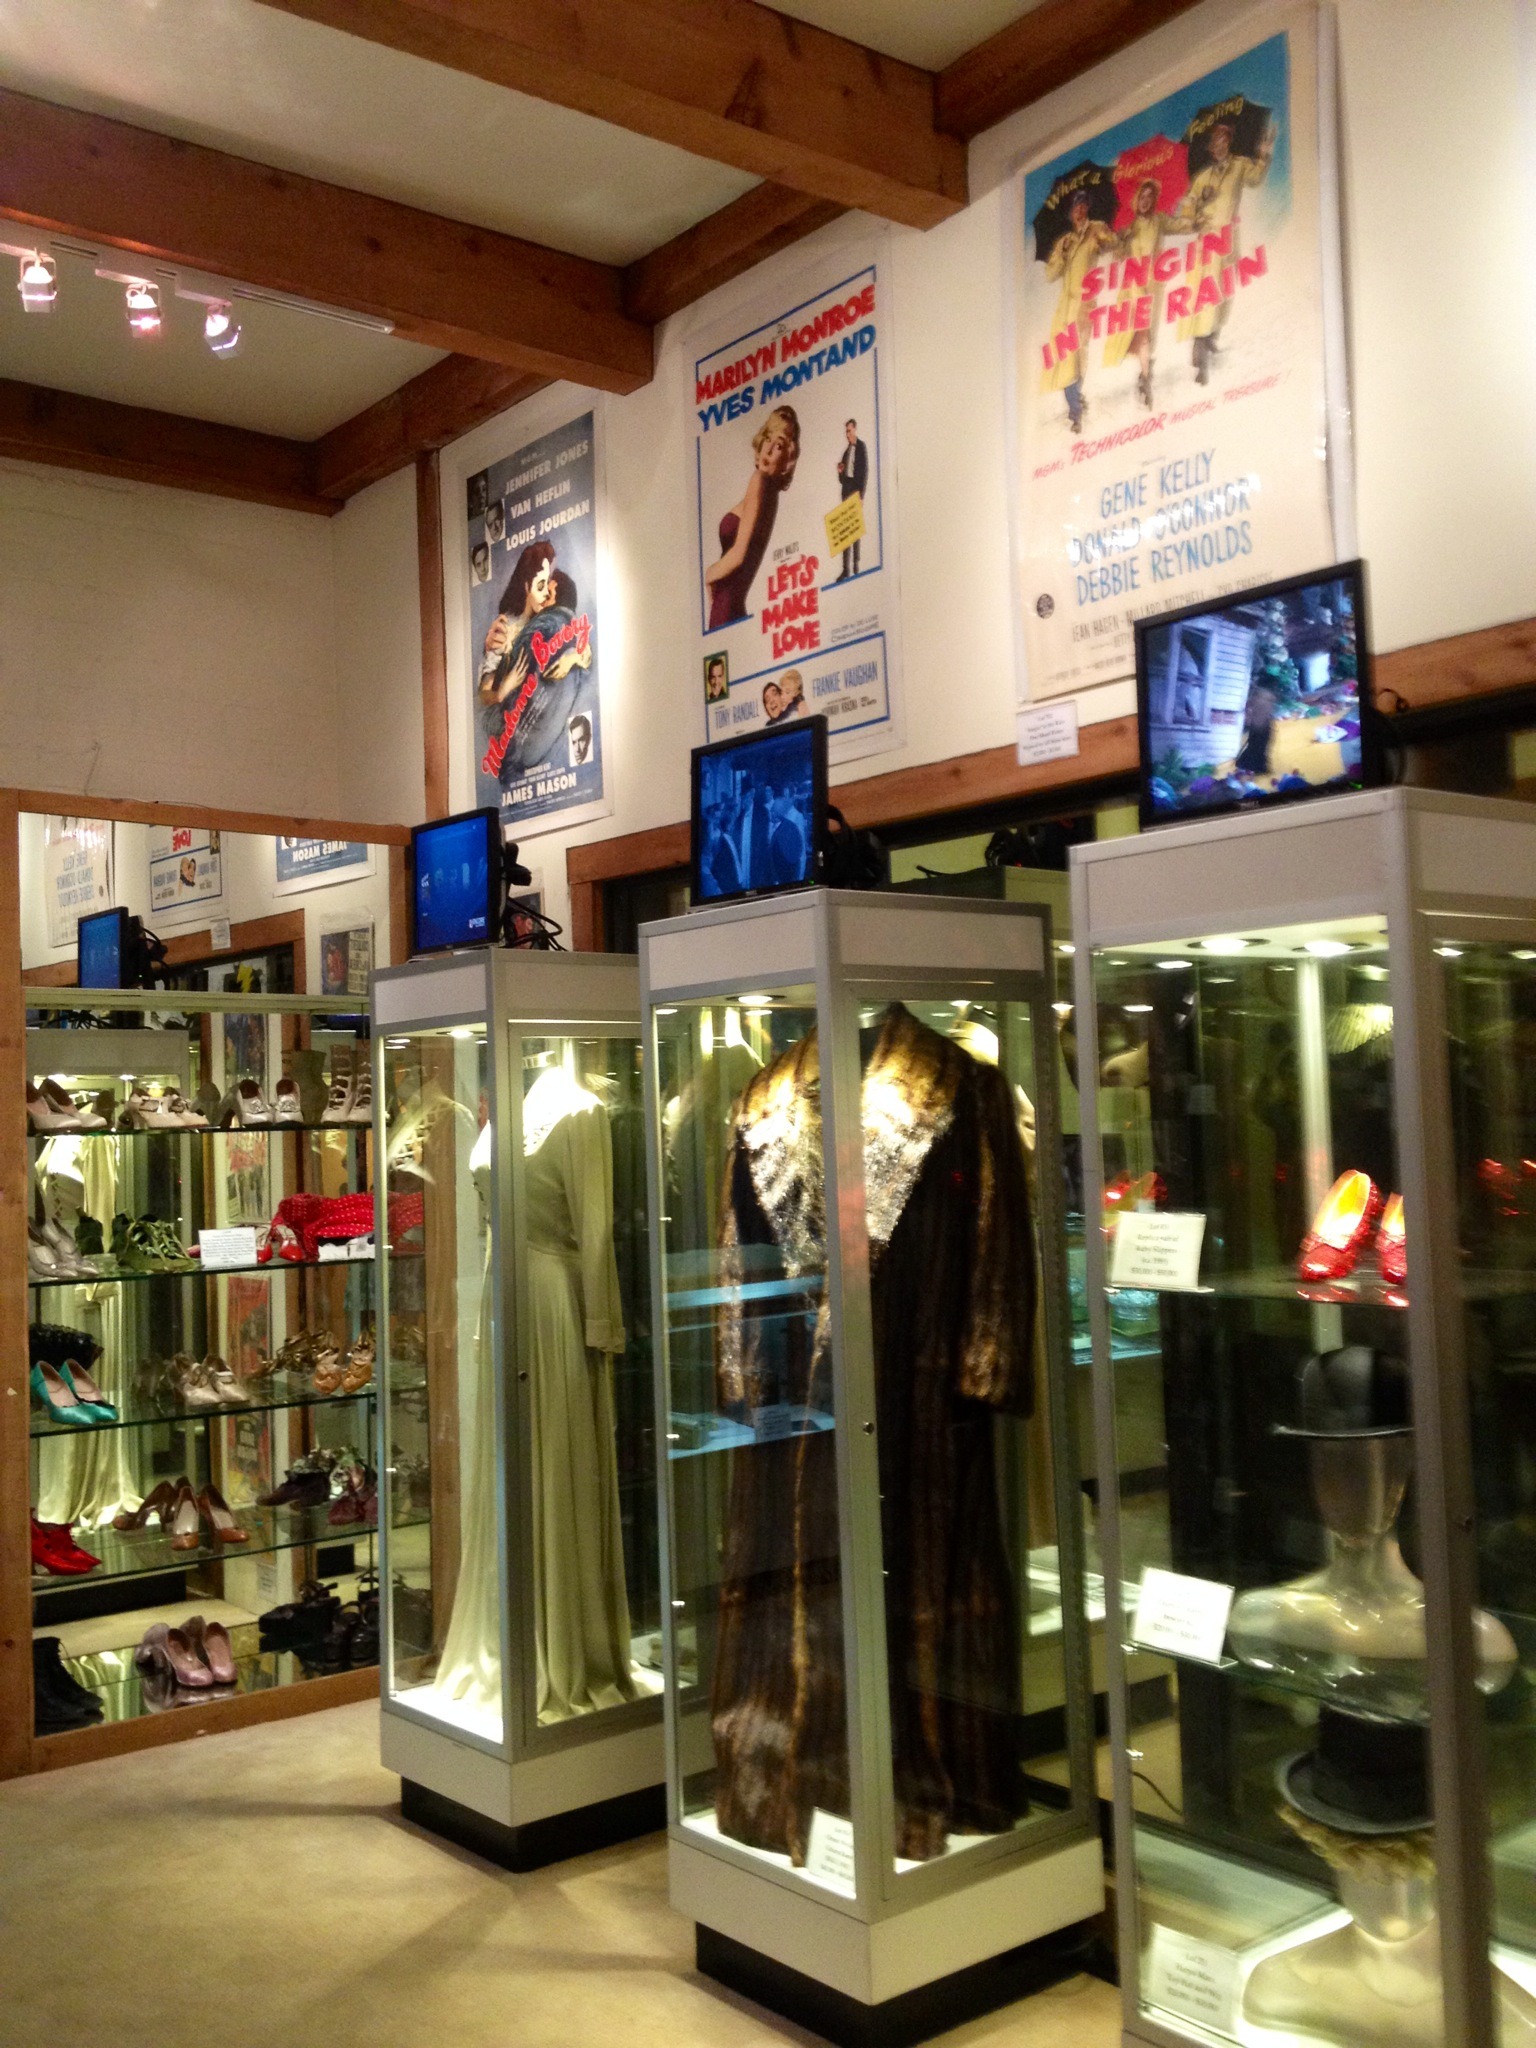 Gorgeous displays set up showcasing some of the most iconic costumes in Hollywood film history...